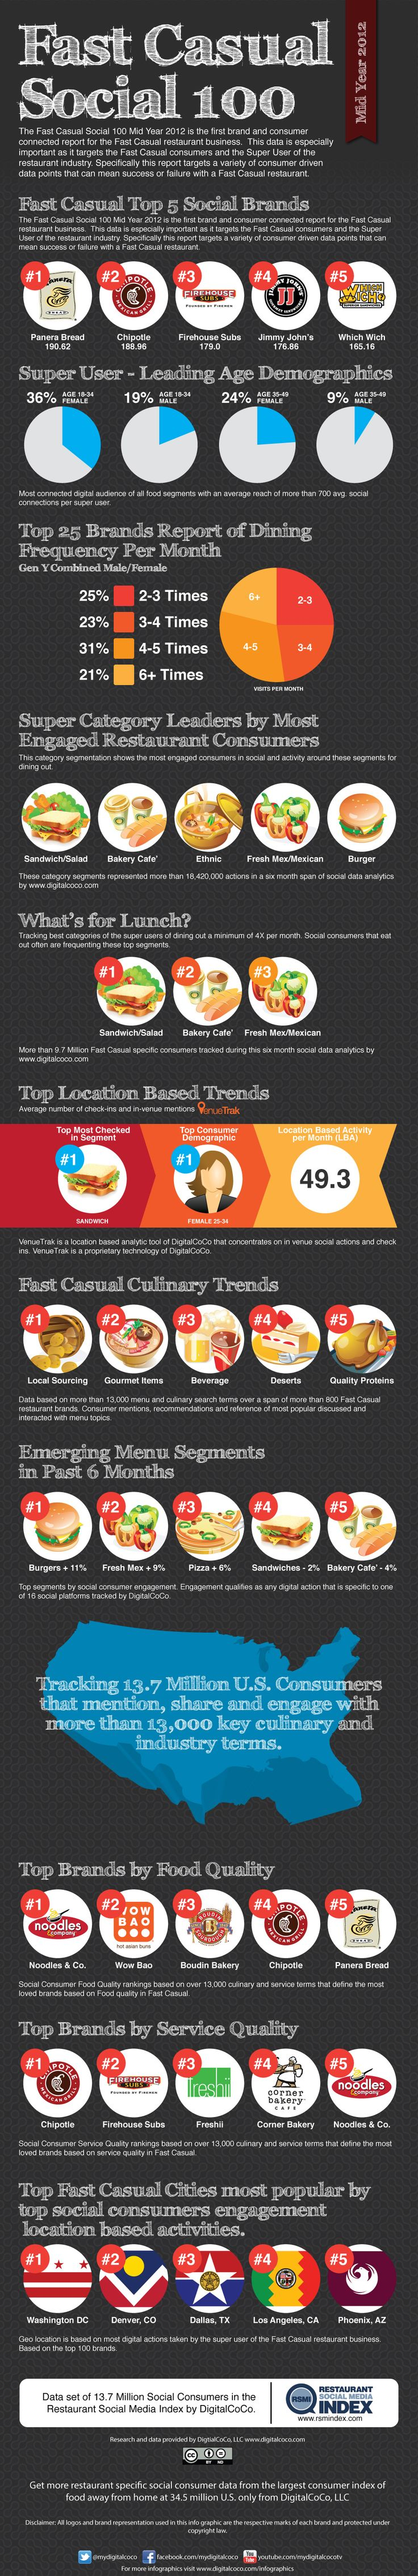 2012 Infographic - Fast Casual Social 100  The Fast Casual segment of the $632 billion  restaurant industry continues to grow, representing $27 billion annually. In fact, this segment grew at an astonishing 20.8 percent in 2011 over 2010, confirming that there is no slowdown in the appeal of Fast Casual to a broad range of consumers. This rising tide won't automatically lift all Fast Casual boats, though.